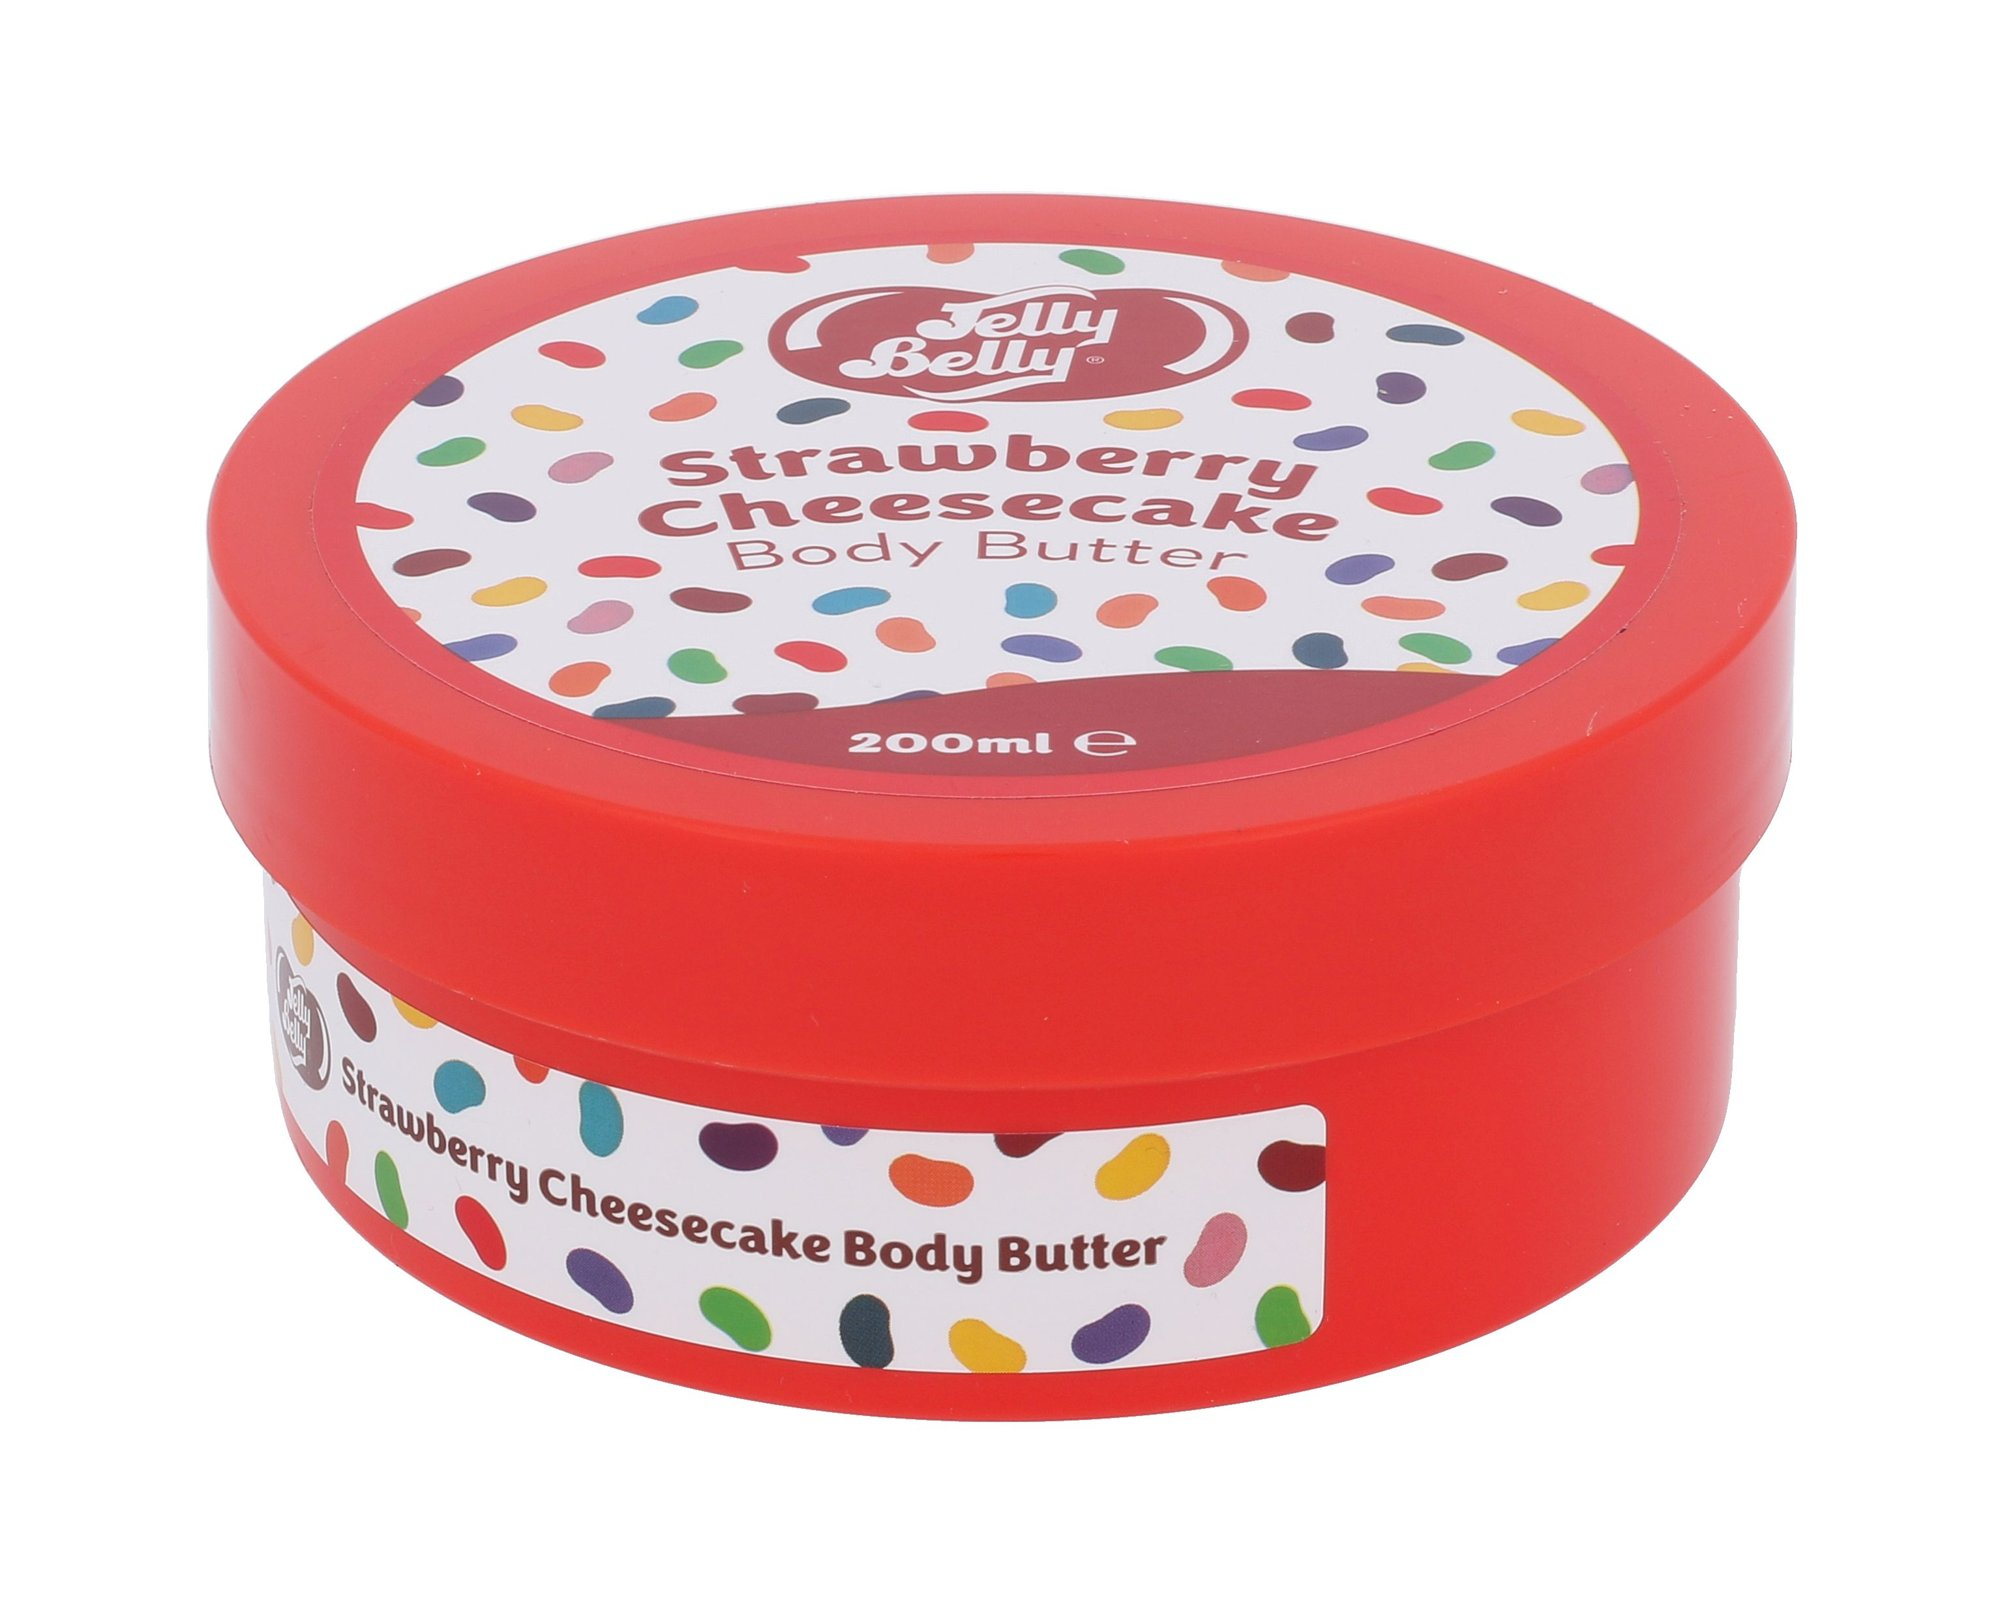 Jelly Belly Strawberry Cheesecake Cosmetic 200ml